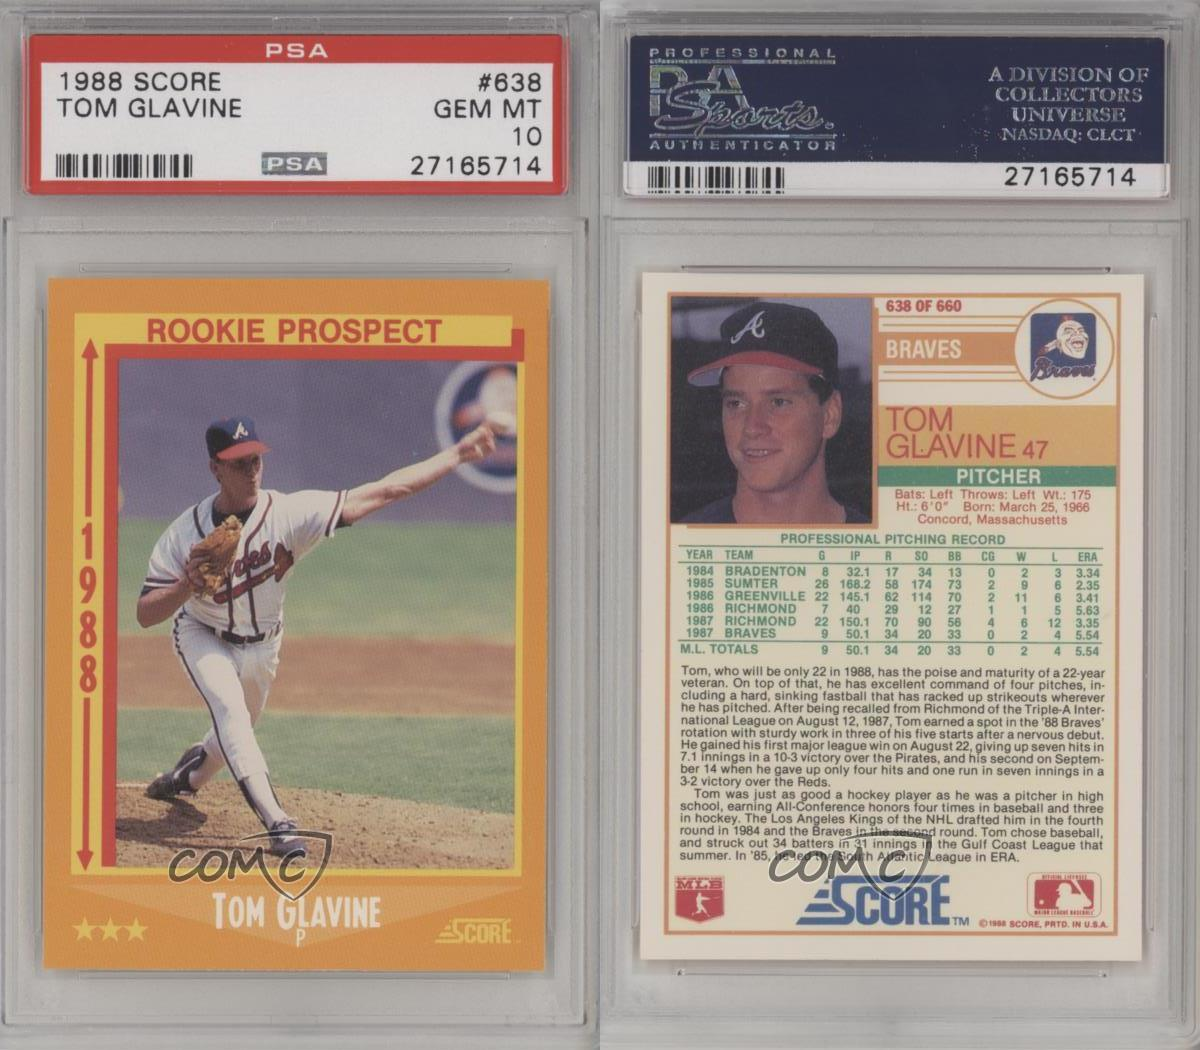 John Smoltz 1989 Donruss Rookie Card 642 Atlanta Braves: 1988 Score #638 Tom Glavine PSA 10 Atlanta Braves RC